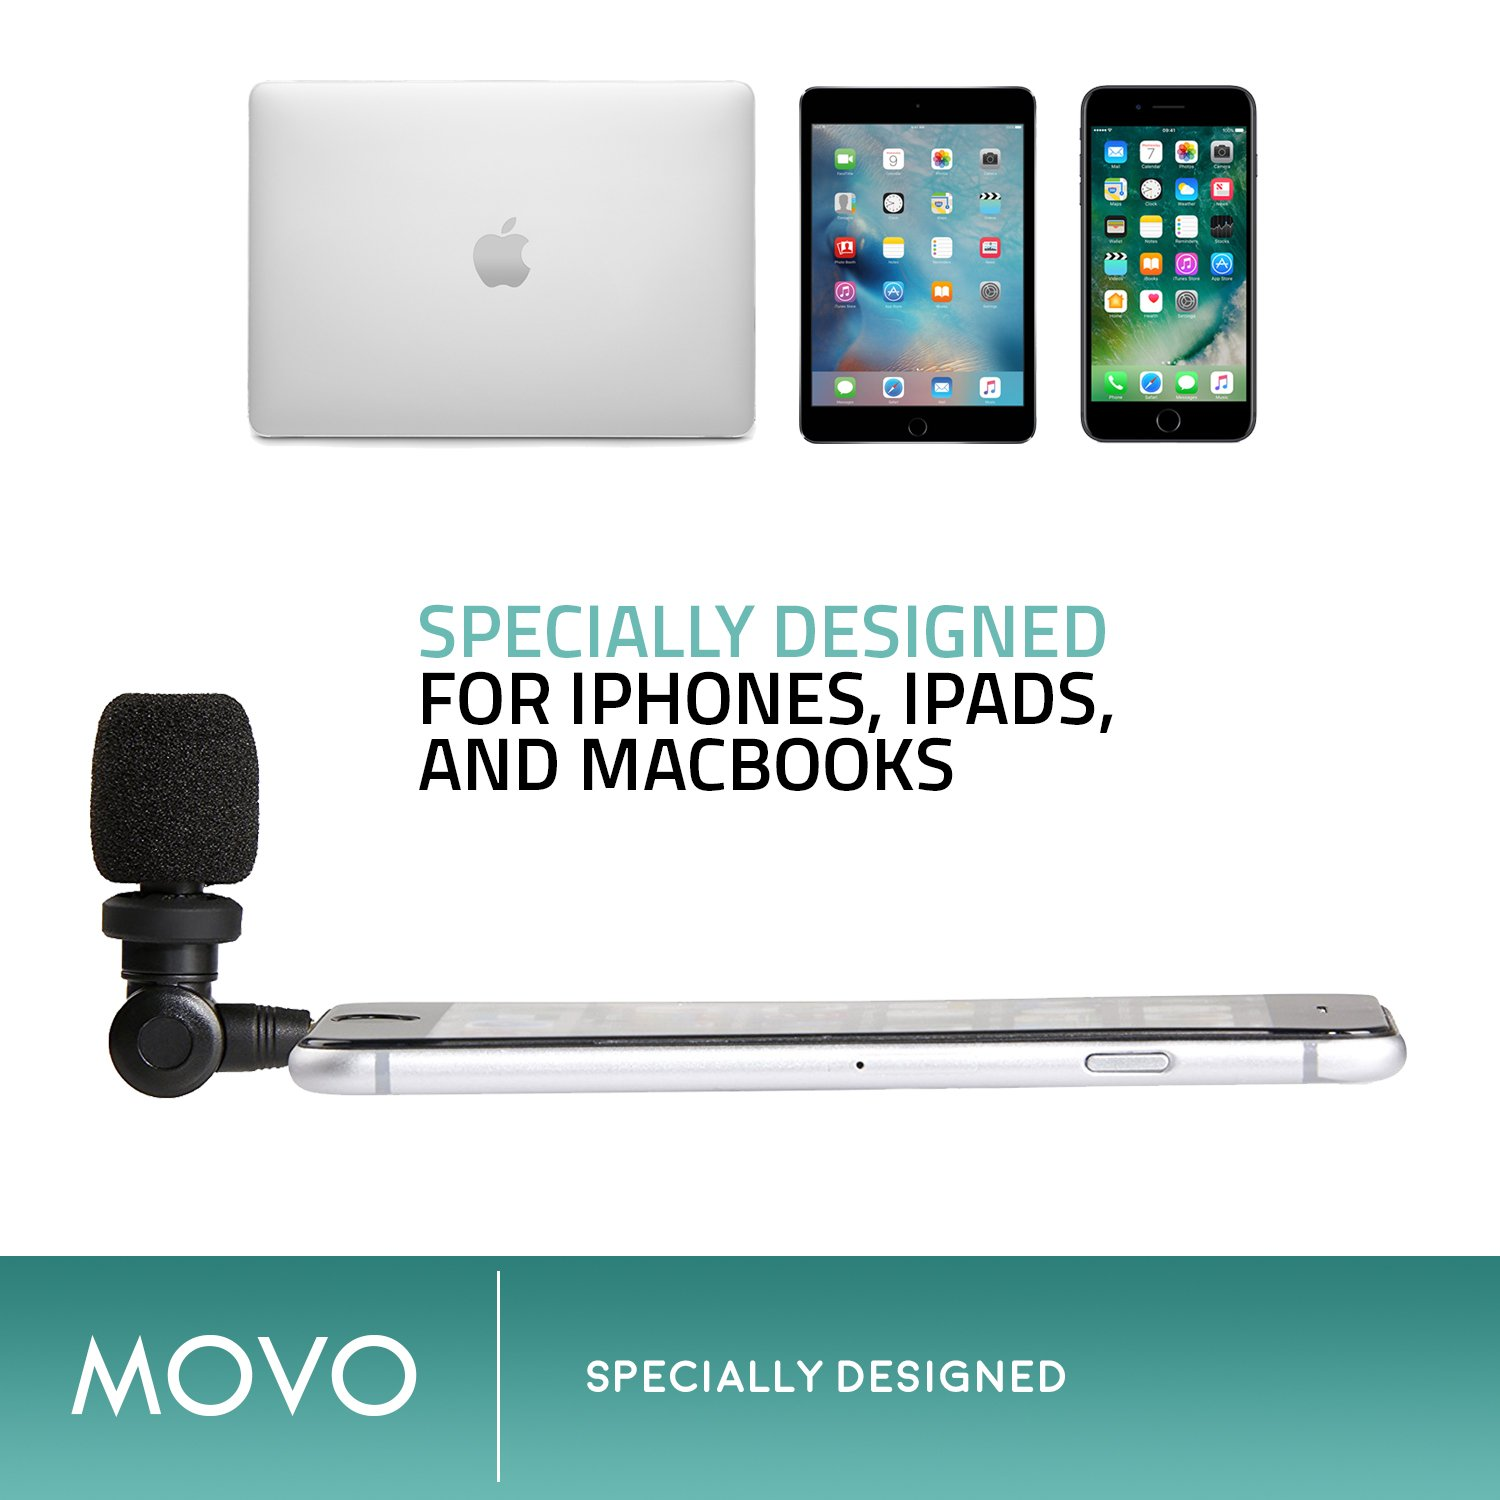 Saramonic SmartMic Microphone with Lightning Dongle Clip for iPhone 7, iPhone 7 Plus, iPhone 8, iPhone X, and other iOS Devices (Black) by Movo (Image #5)